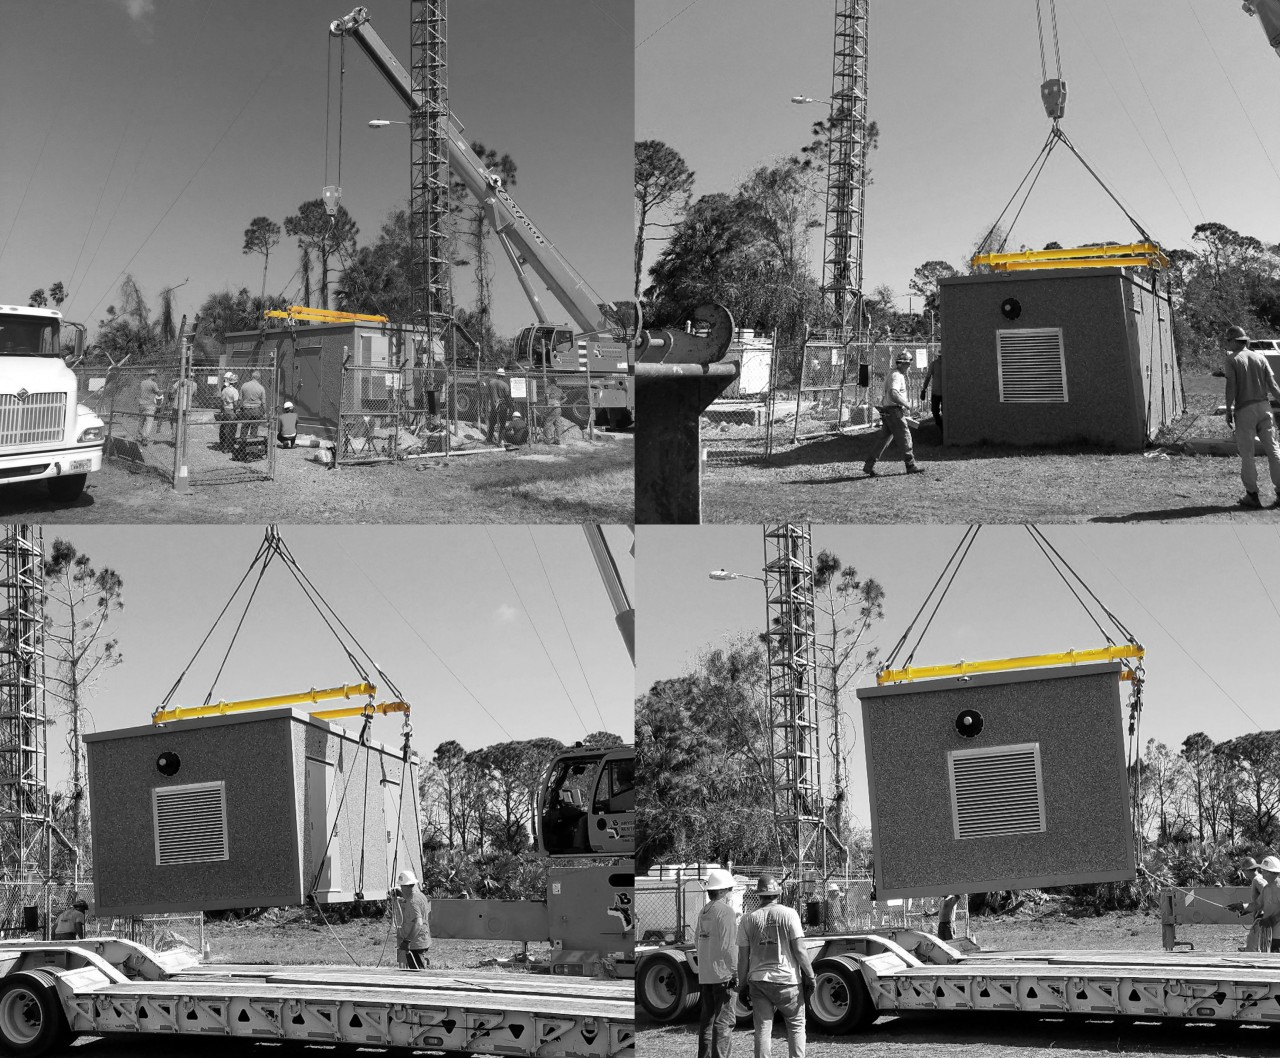 Modulift Spreader Beams to Lift 17 90,000-lb. Buildings